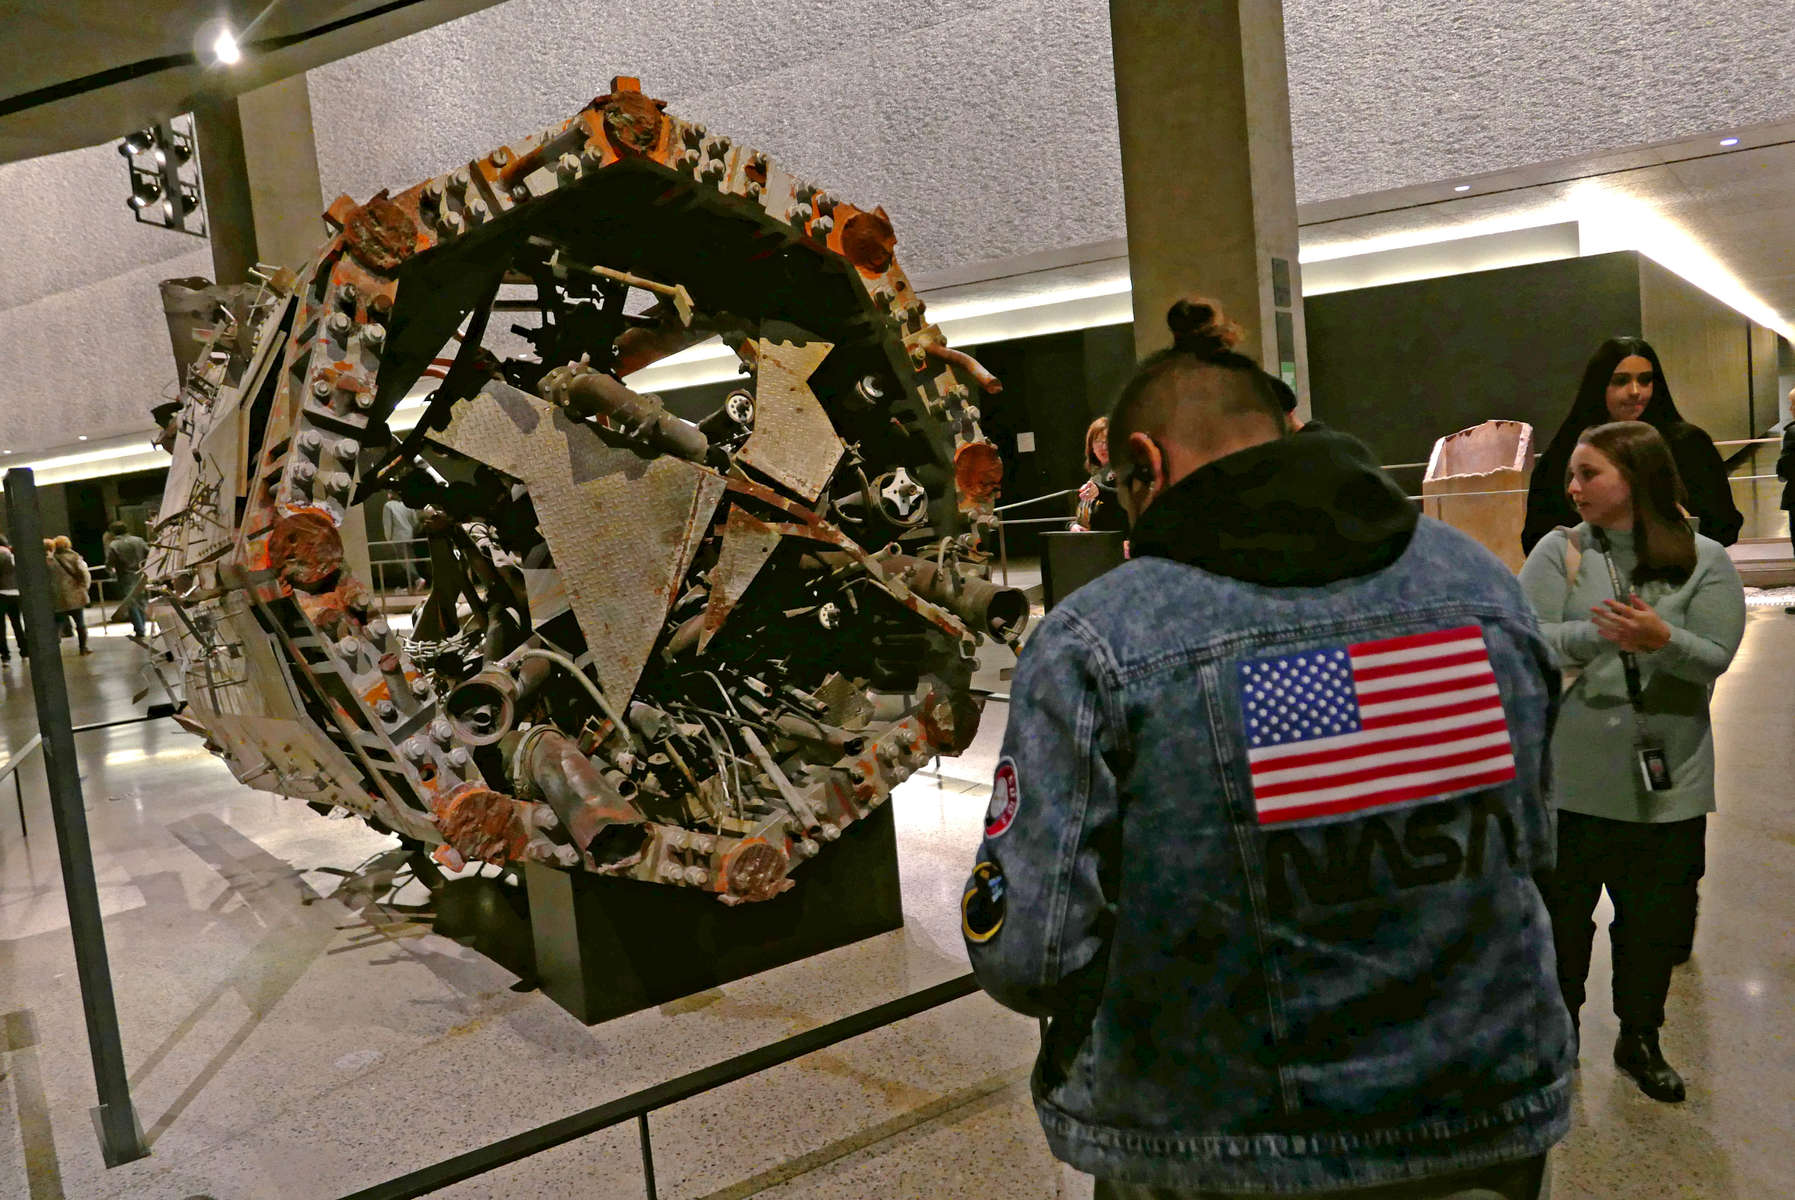 Remains of the rooftop antenna from one of the Twin Towers, 9/11 Memorial and Museum, NYC. Jon Chase photo